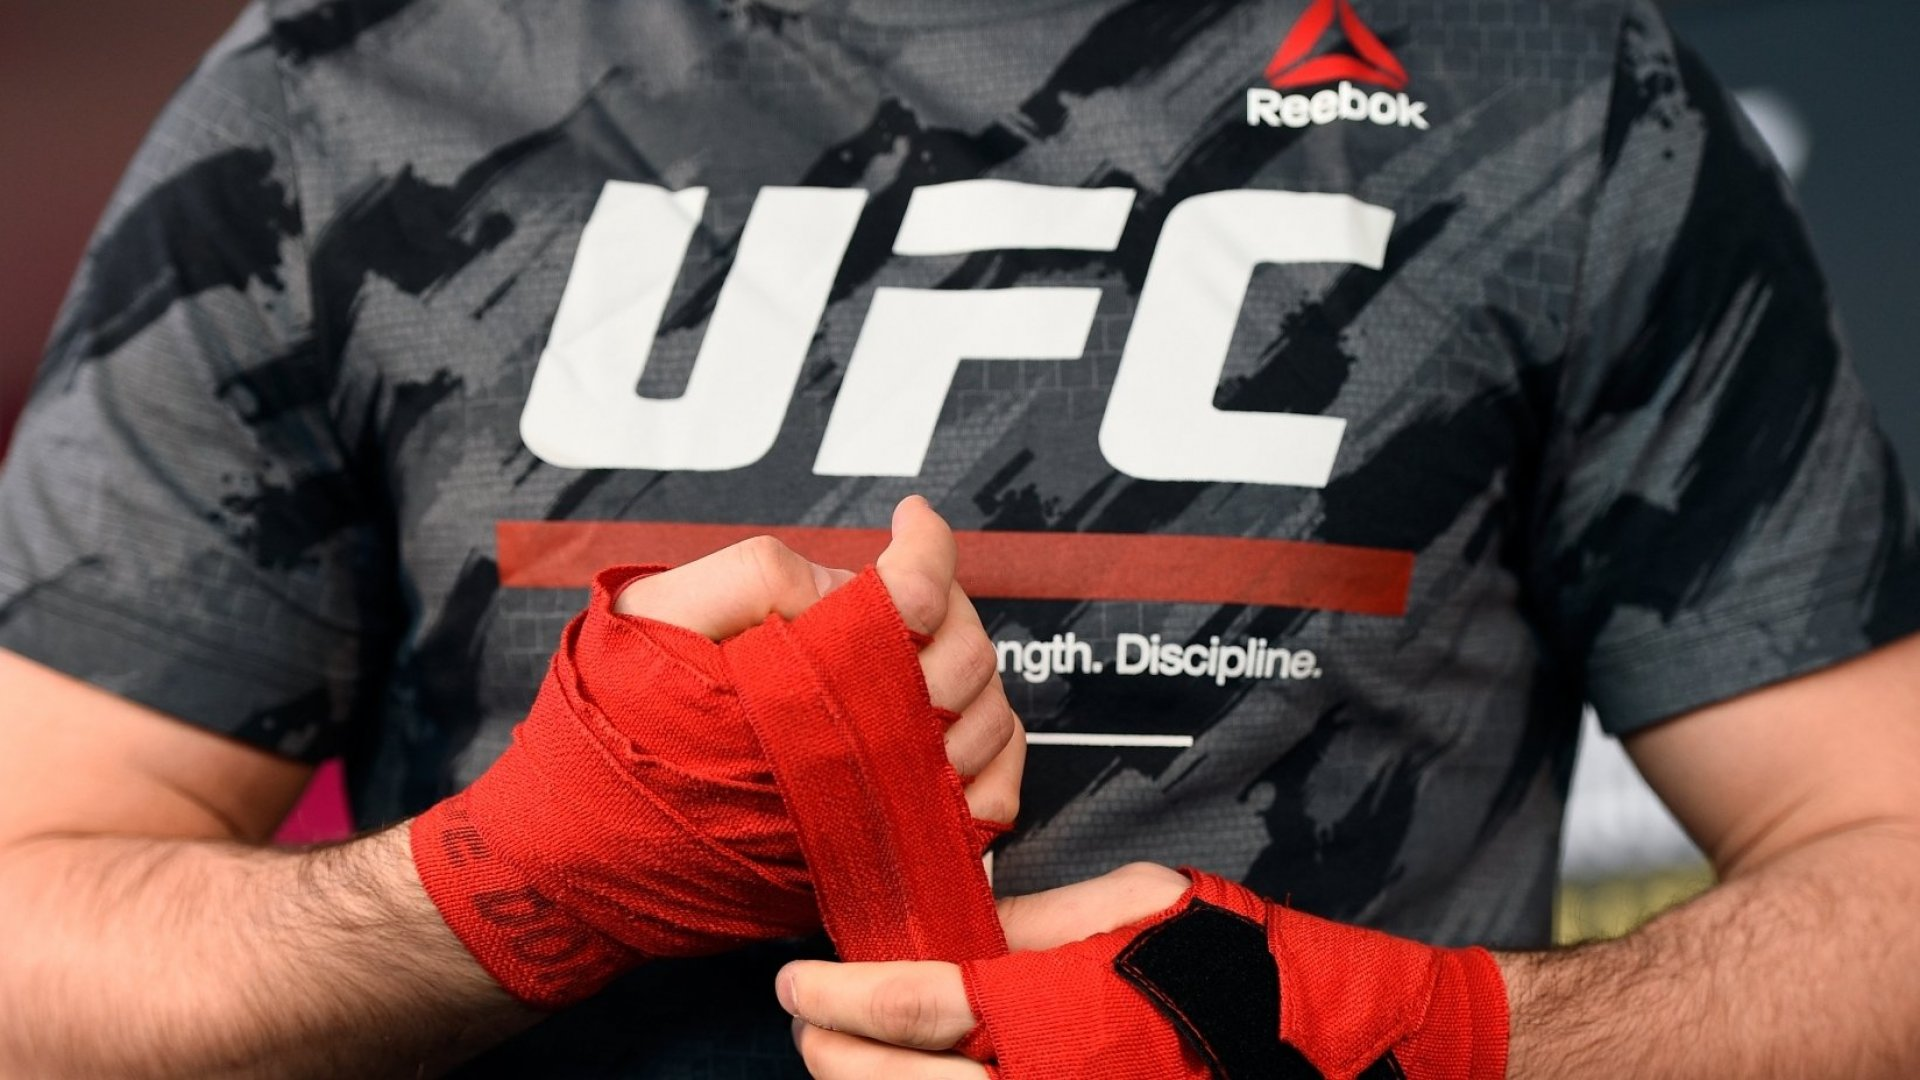 Reebok's shift to a focus on fitness includes sponsorship of the UFC.